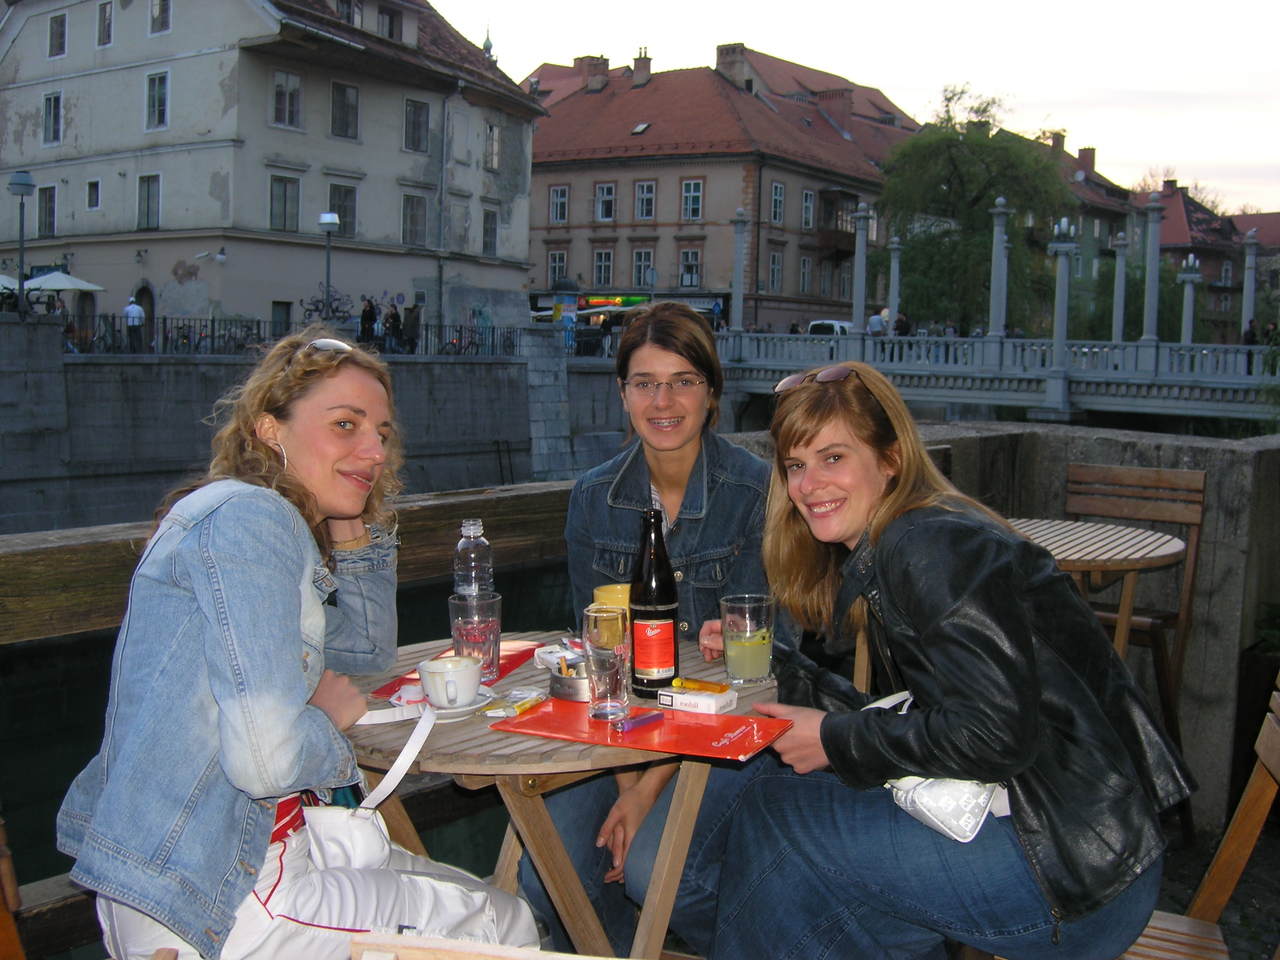 Nejka, Ana and their friend